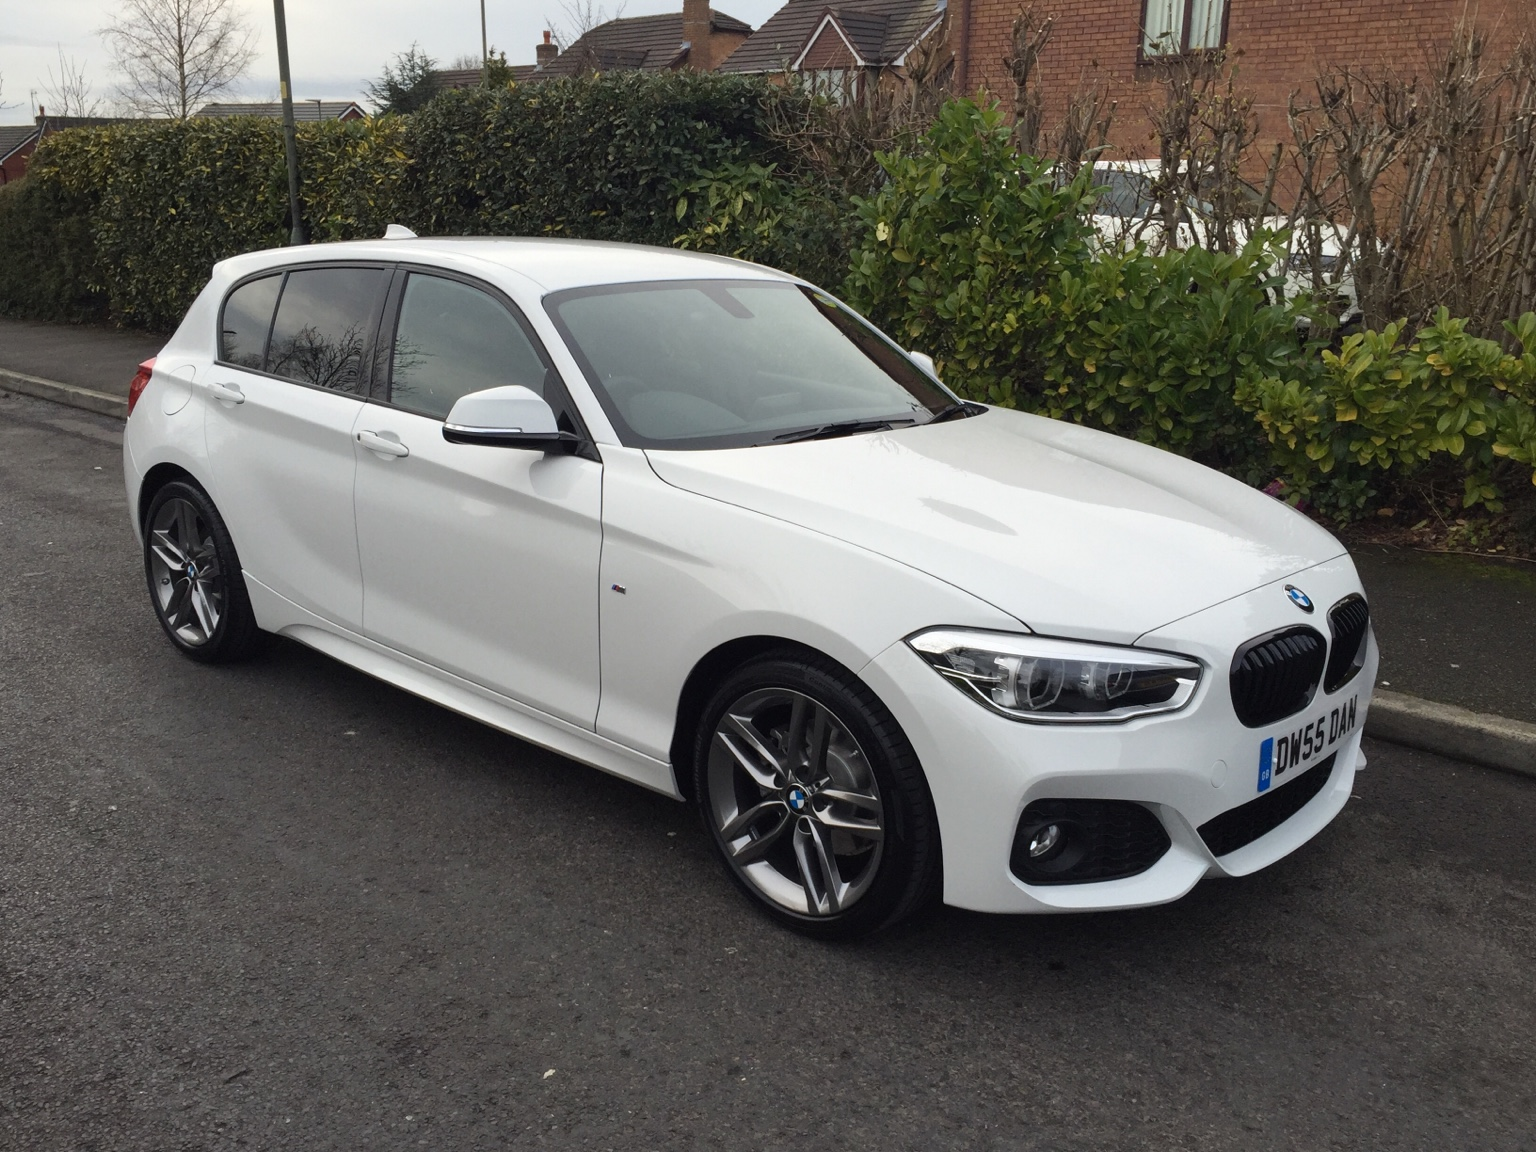 bmw 120d f20 facelift i need owners experiences. Black Bedroom Furniture Sets. Home Design Ideas